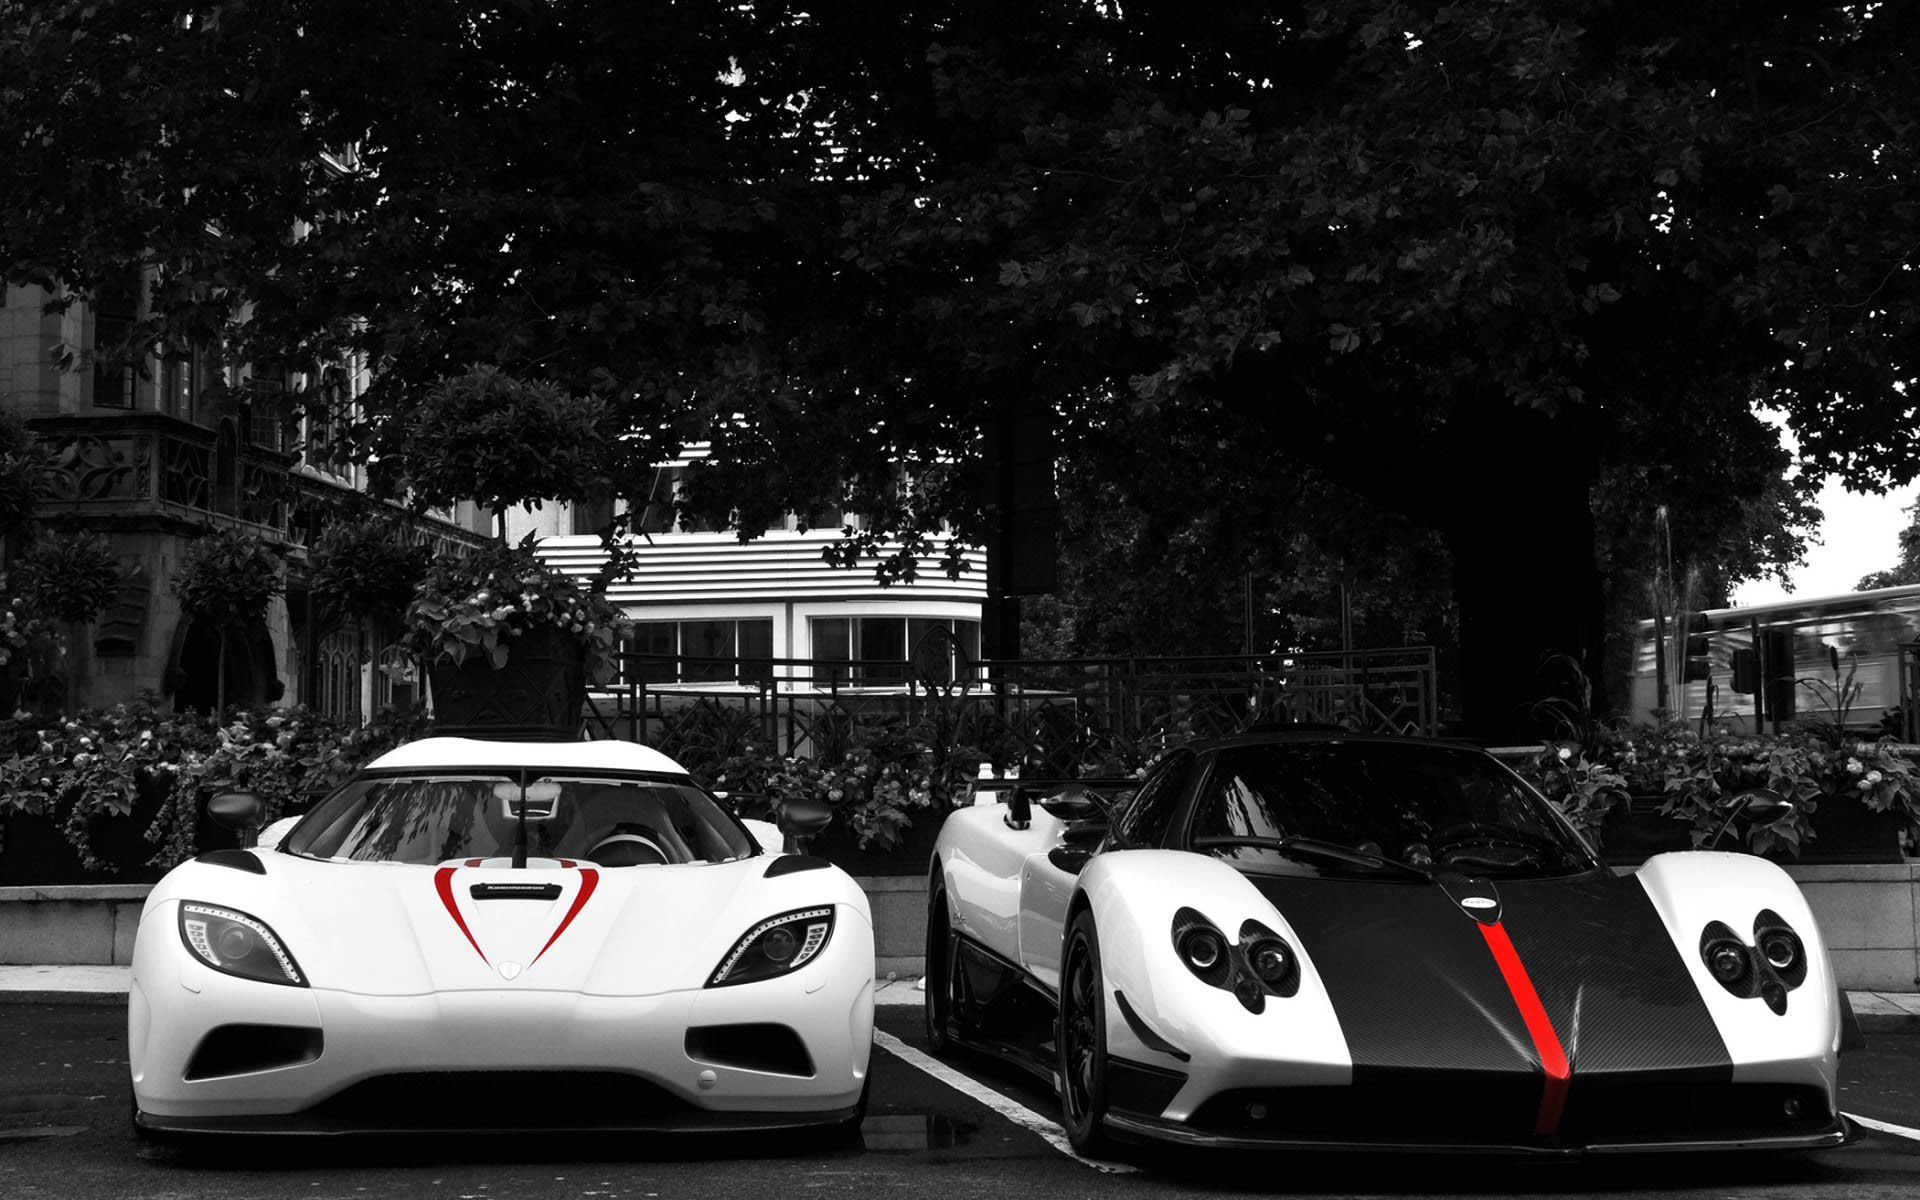 1920x1200 White Koenigsegg Agera R VS Black & White Pagani Zonda  wallpaper